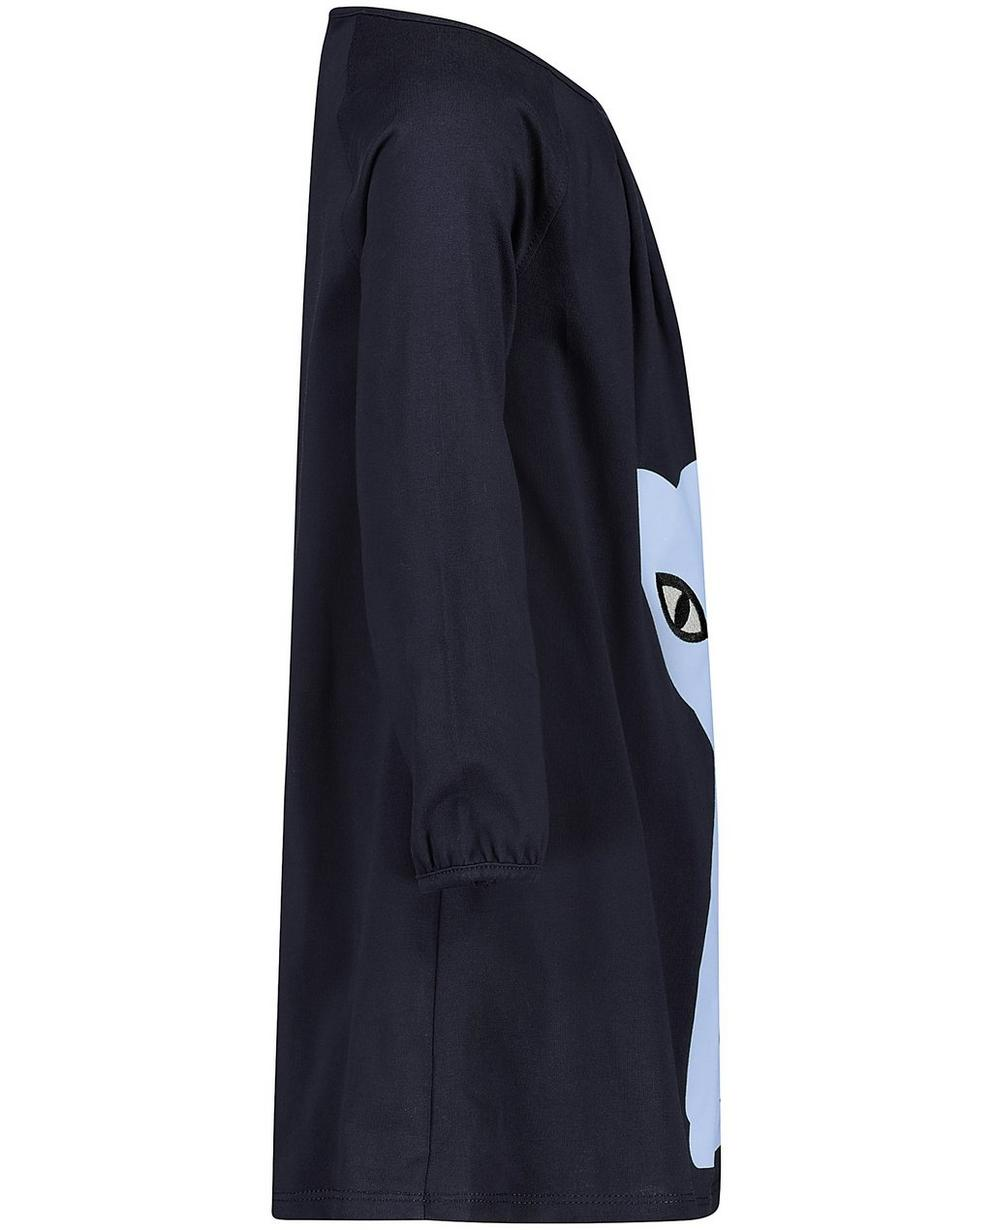 Robes - navy - Robe bleu nuit